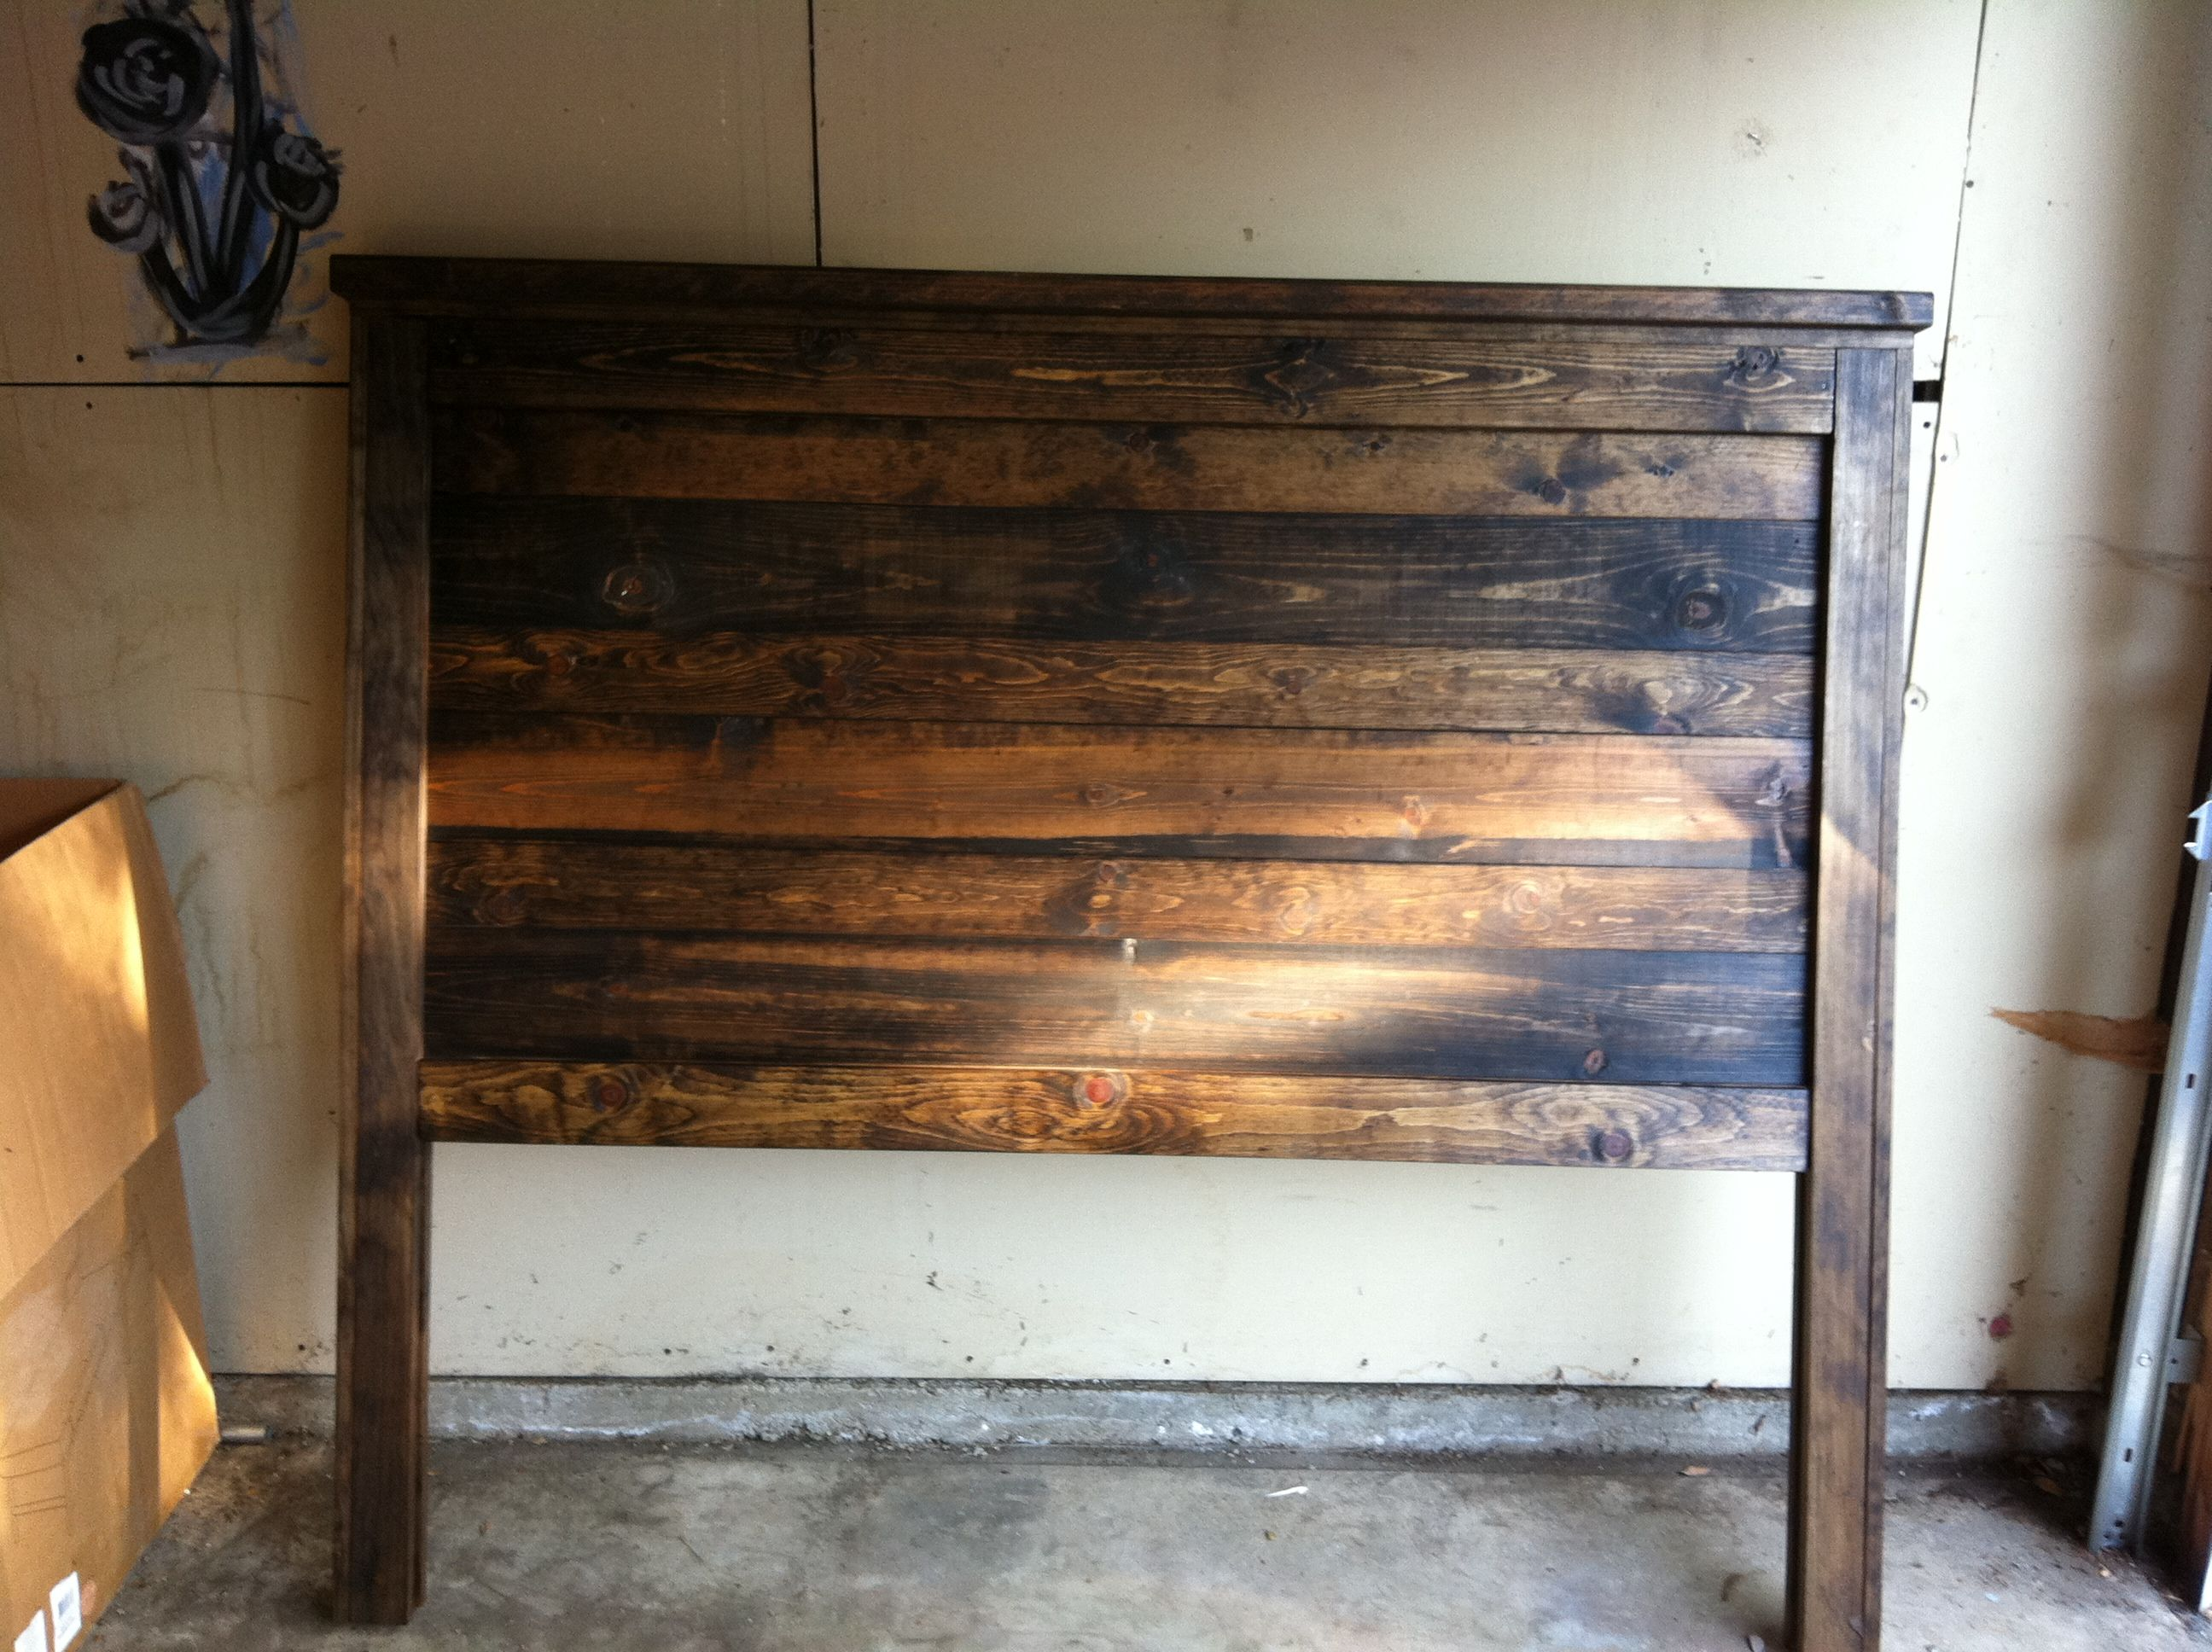 Wooden Bed Headboards Designs reclaimed wood bed headboard - google search | furniture